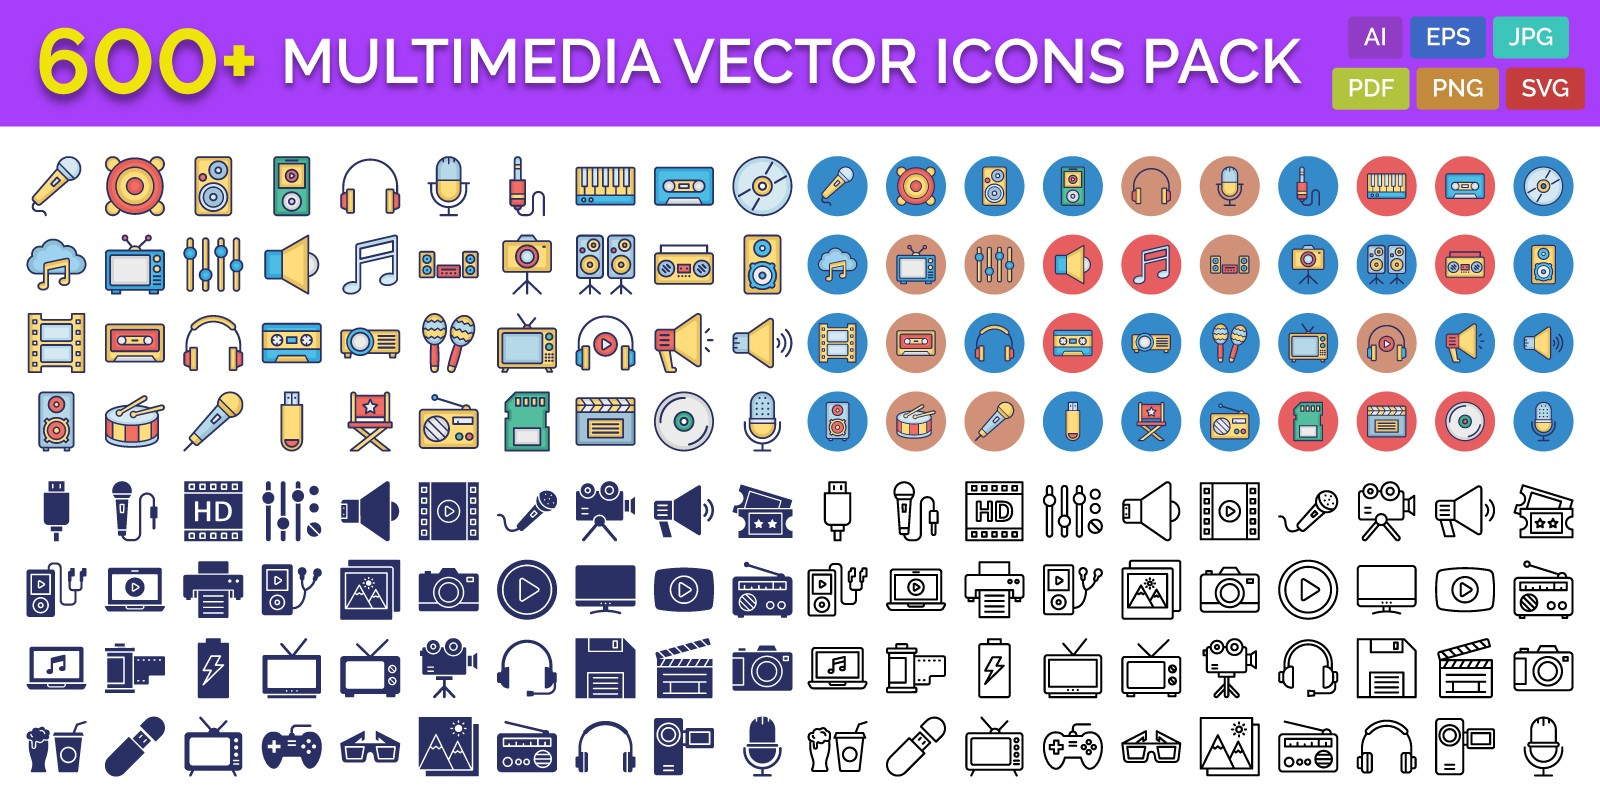 600 Multimedia Vector Icons Pack